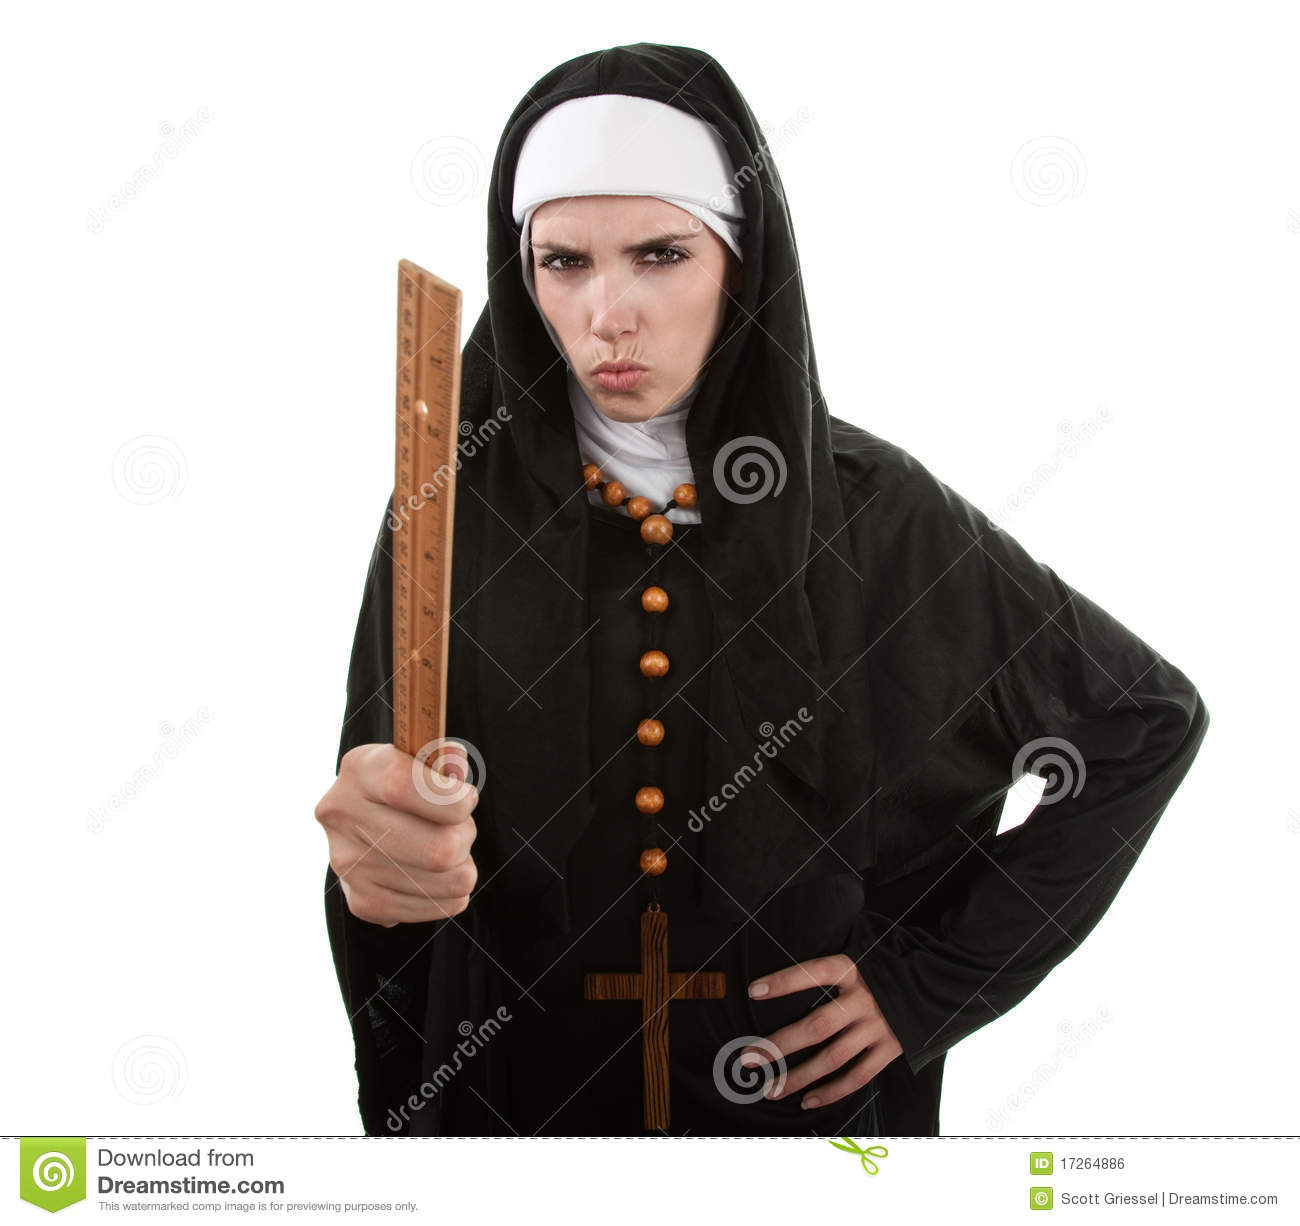 angry nun stock photos - royalty free images